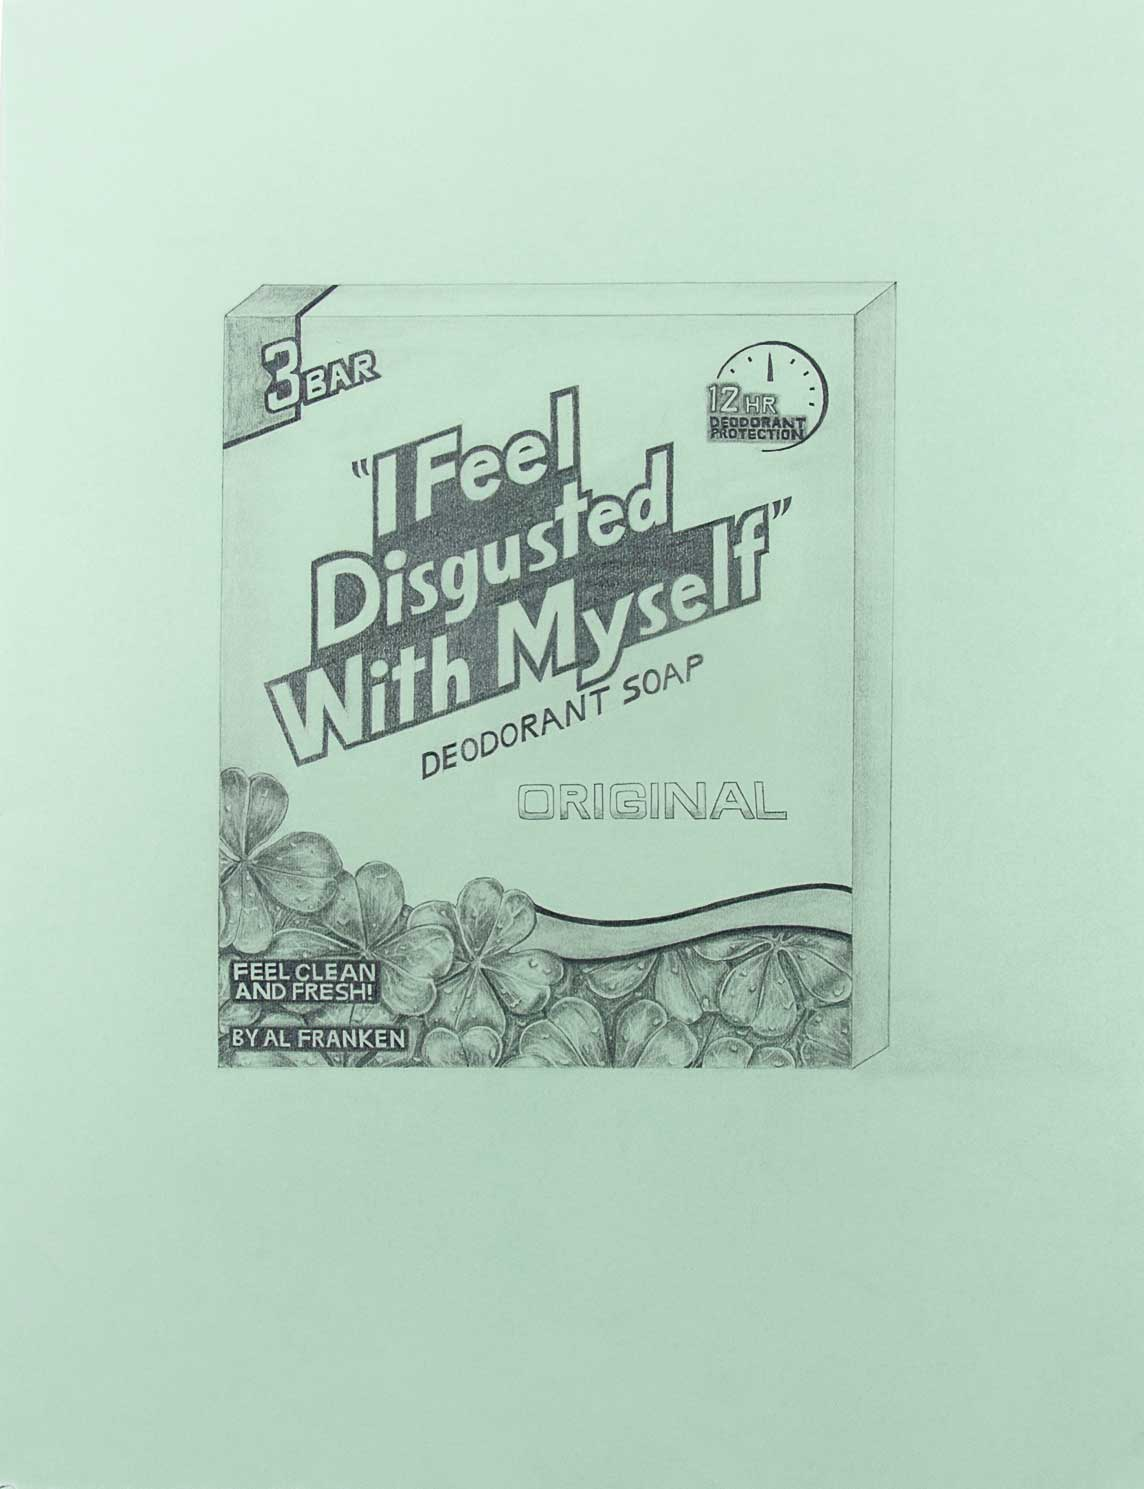 """I Feel Disgusted With Myself"" Deodorant Soap by Al Franken, U.S. Senator (Irish Spring), graphite on paper, 25.5in x 19.5in, 2018"